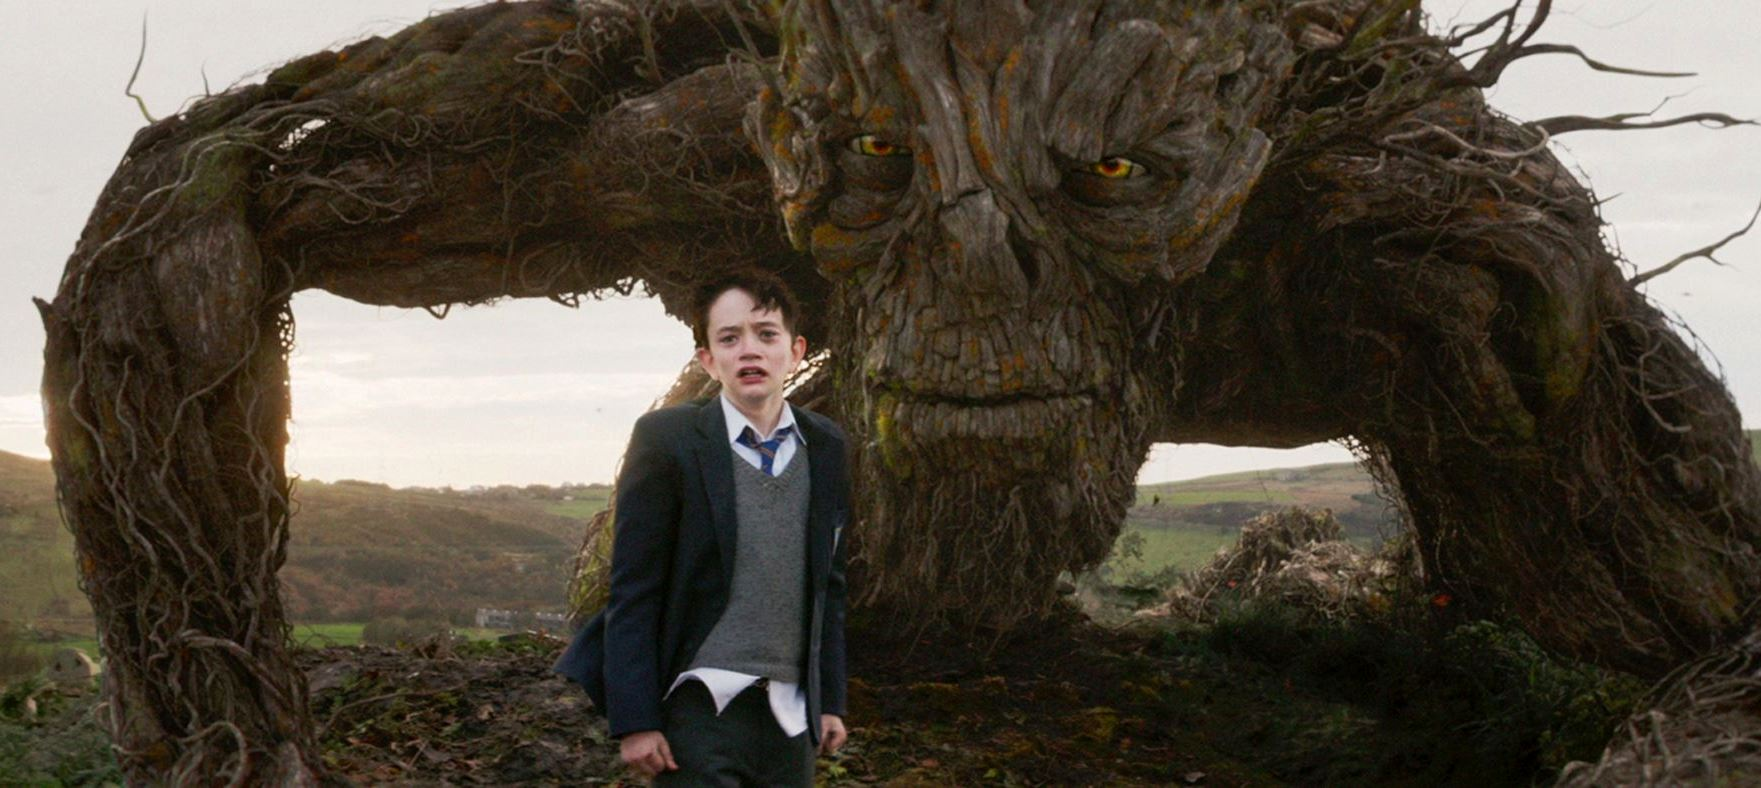 Lewis MacDougall and the monster in A Monster Calls (2016)